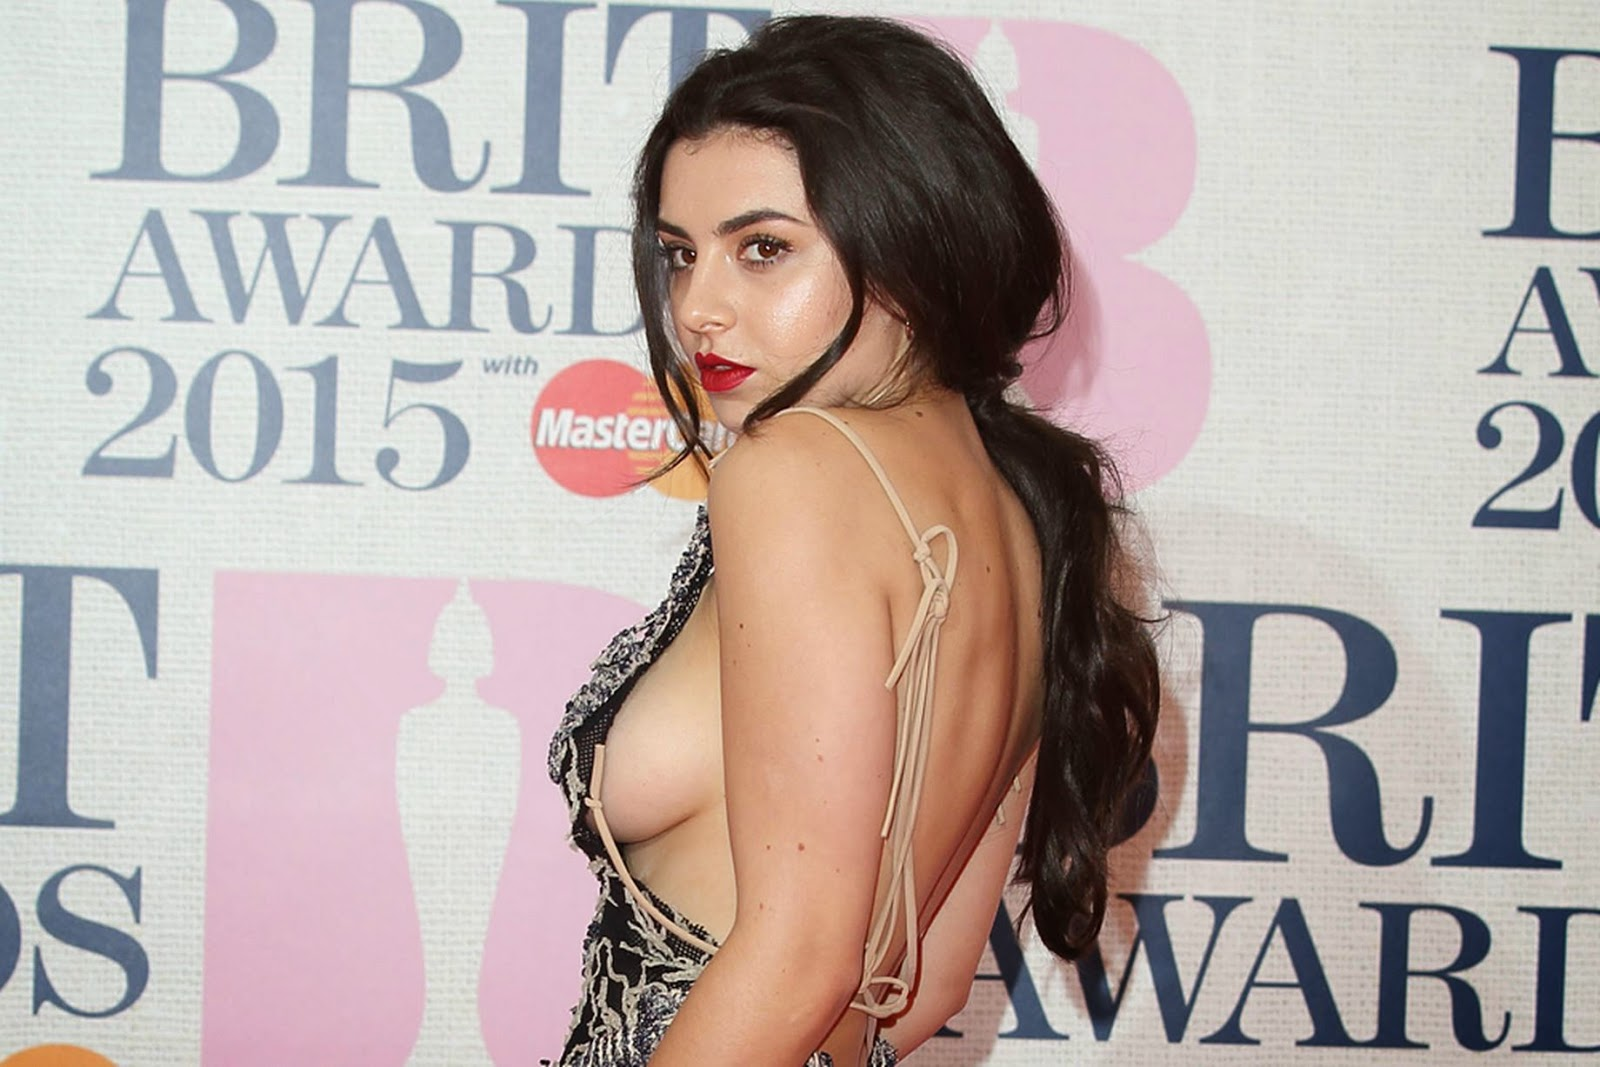 Charli XCX in a backless monochrome dress at the 2015 BRIT Awards in London